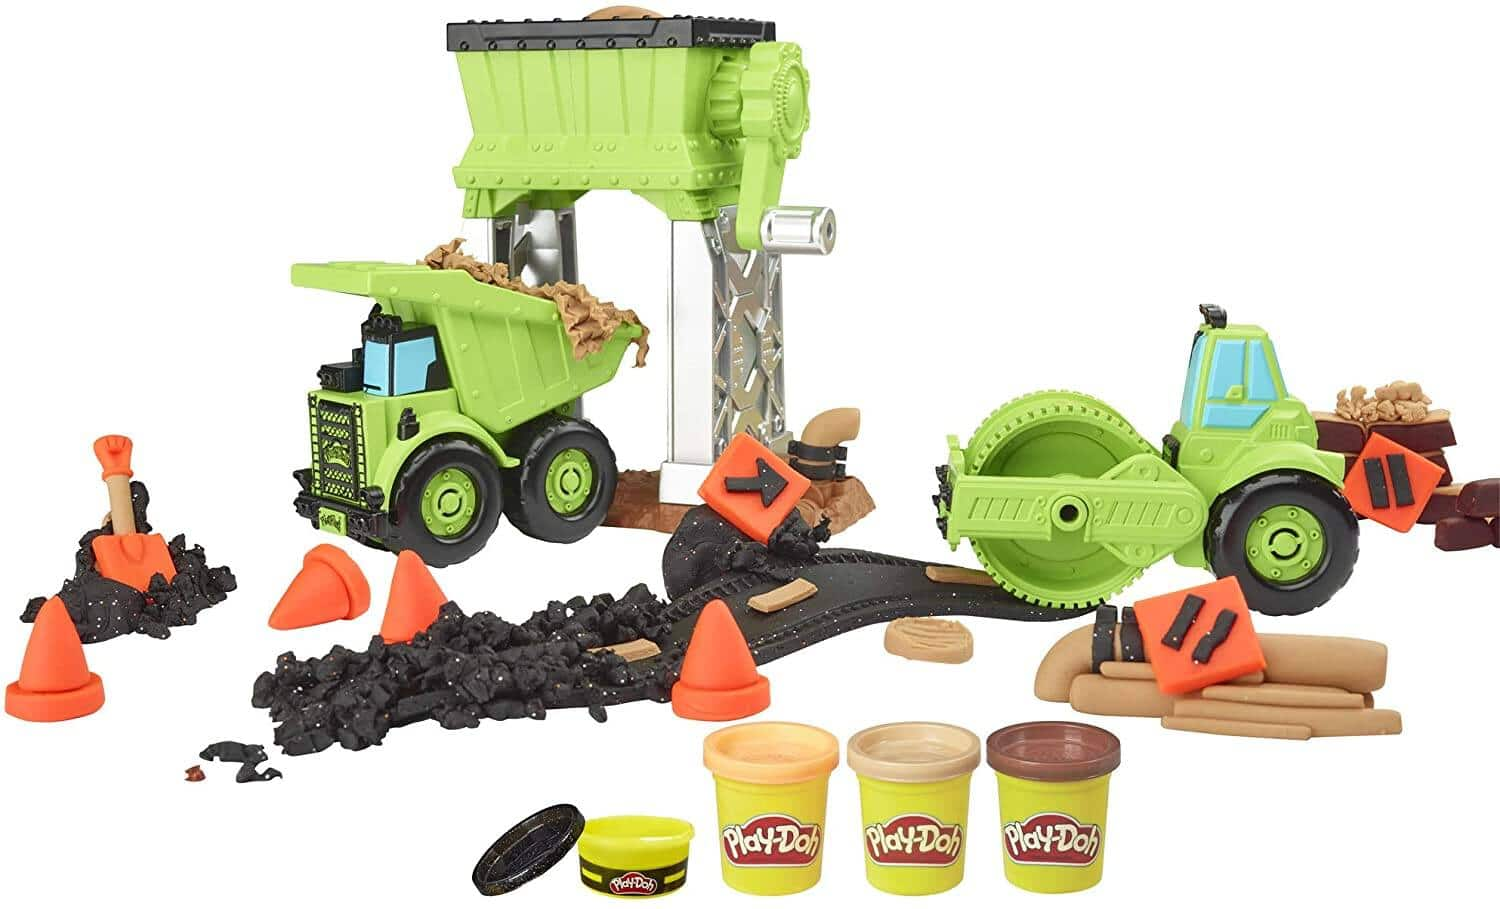 Play-Doh Wheels Gravel Yard Construction Toy $9.88 + Free Shipping w/ Prime or on $25+